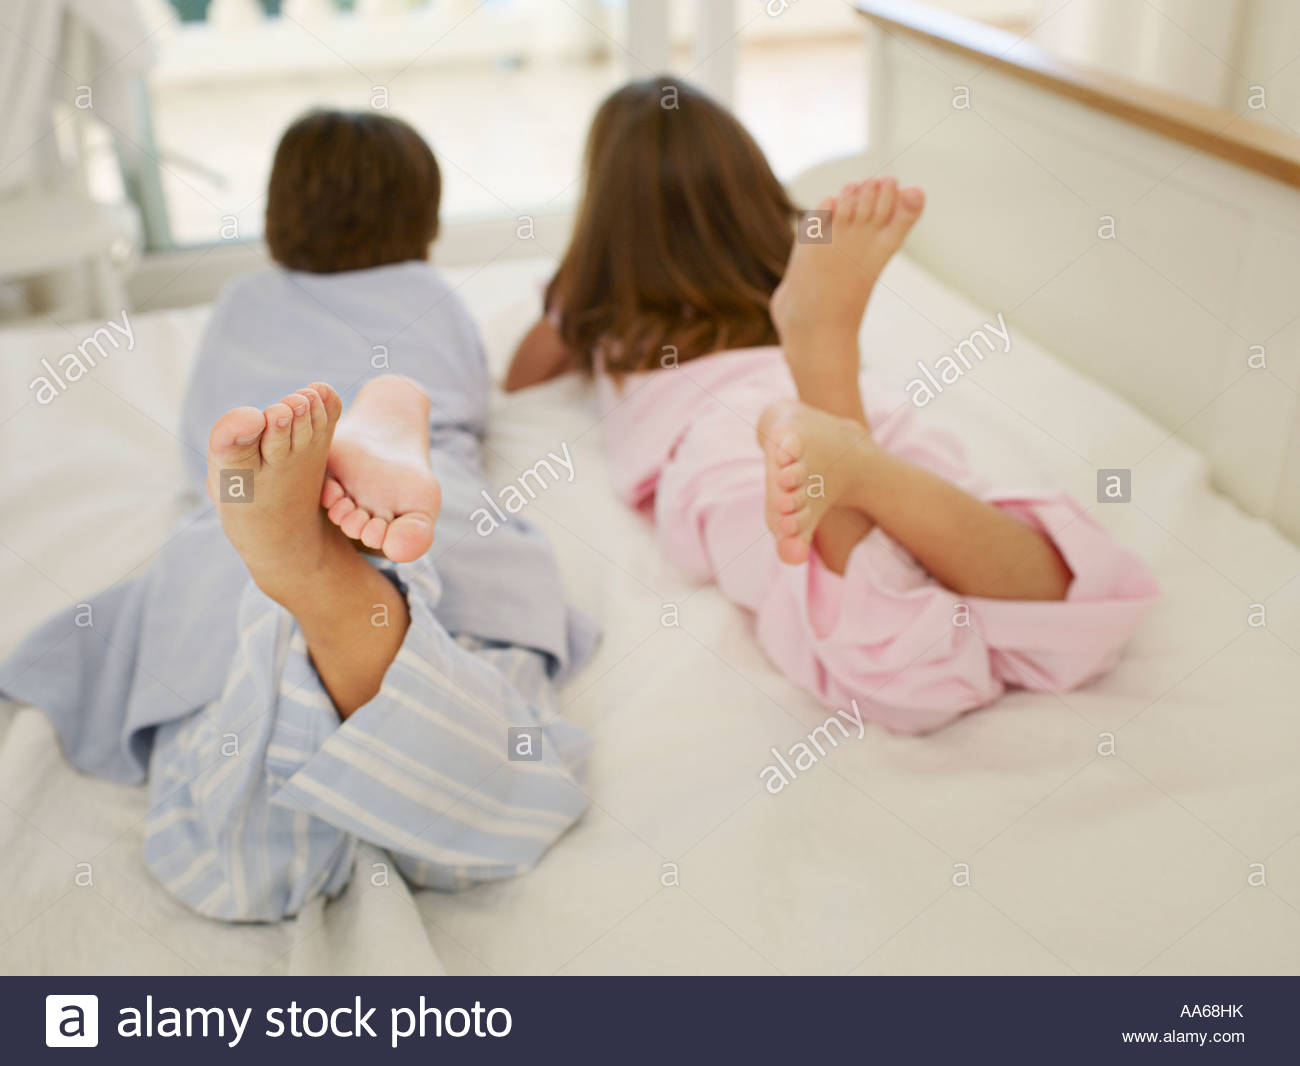 Young brother and sister on a bed lying on their stomachs - Stock Image